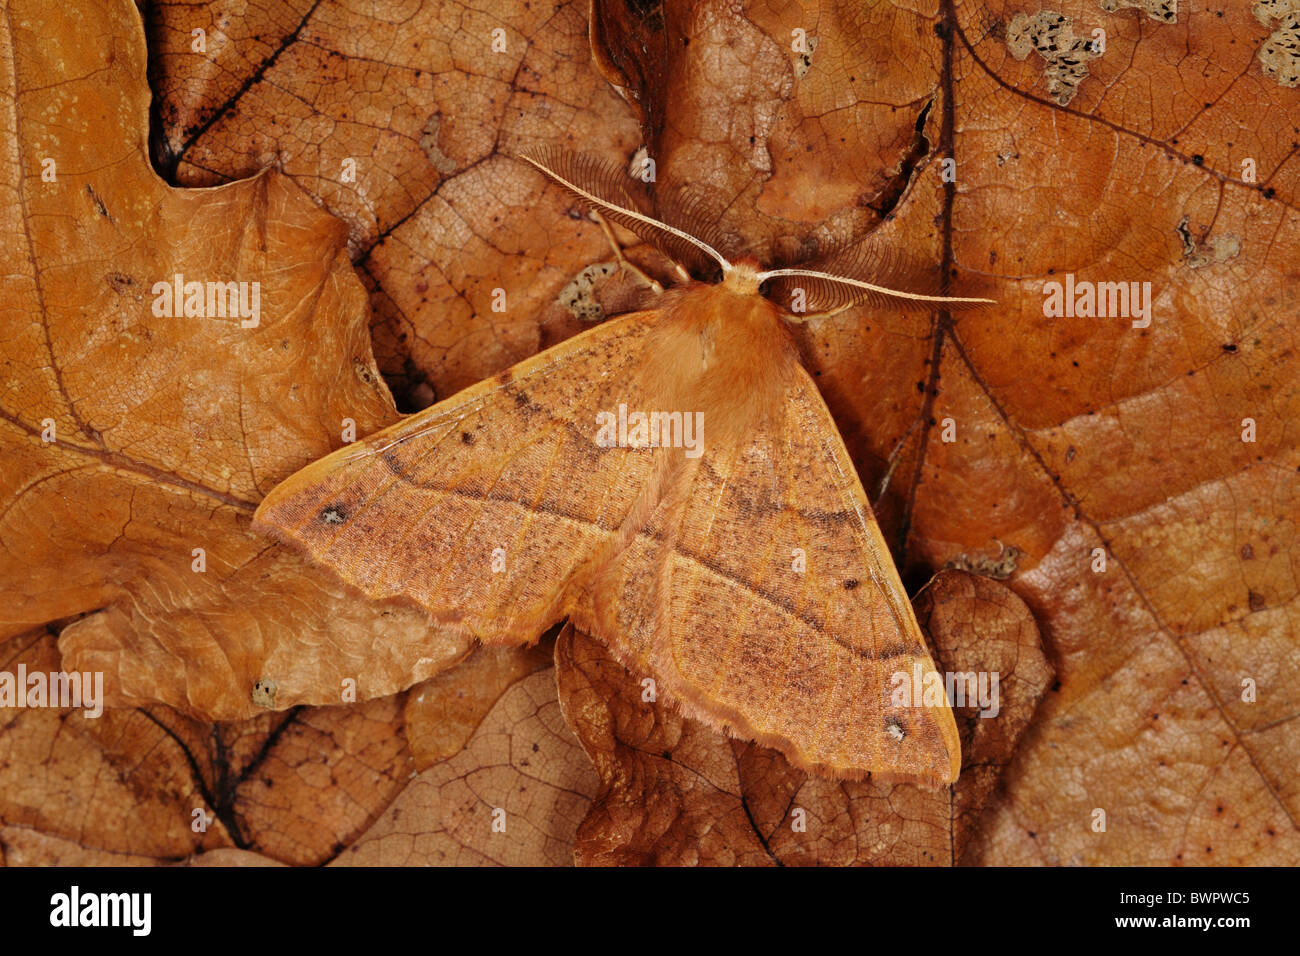 Feathered Thorn moth Colotois pennaria camouflage insect - Stock Image